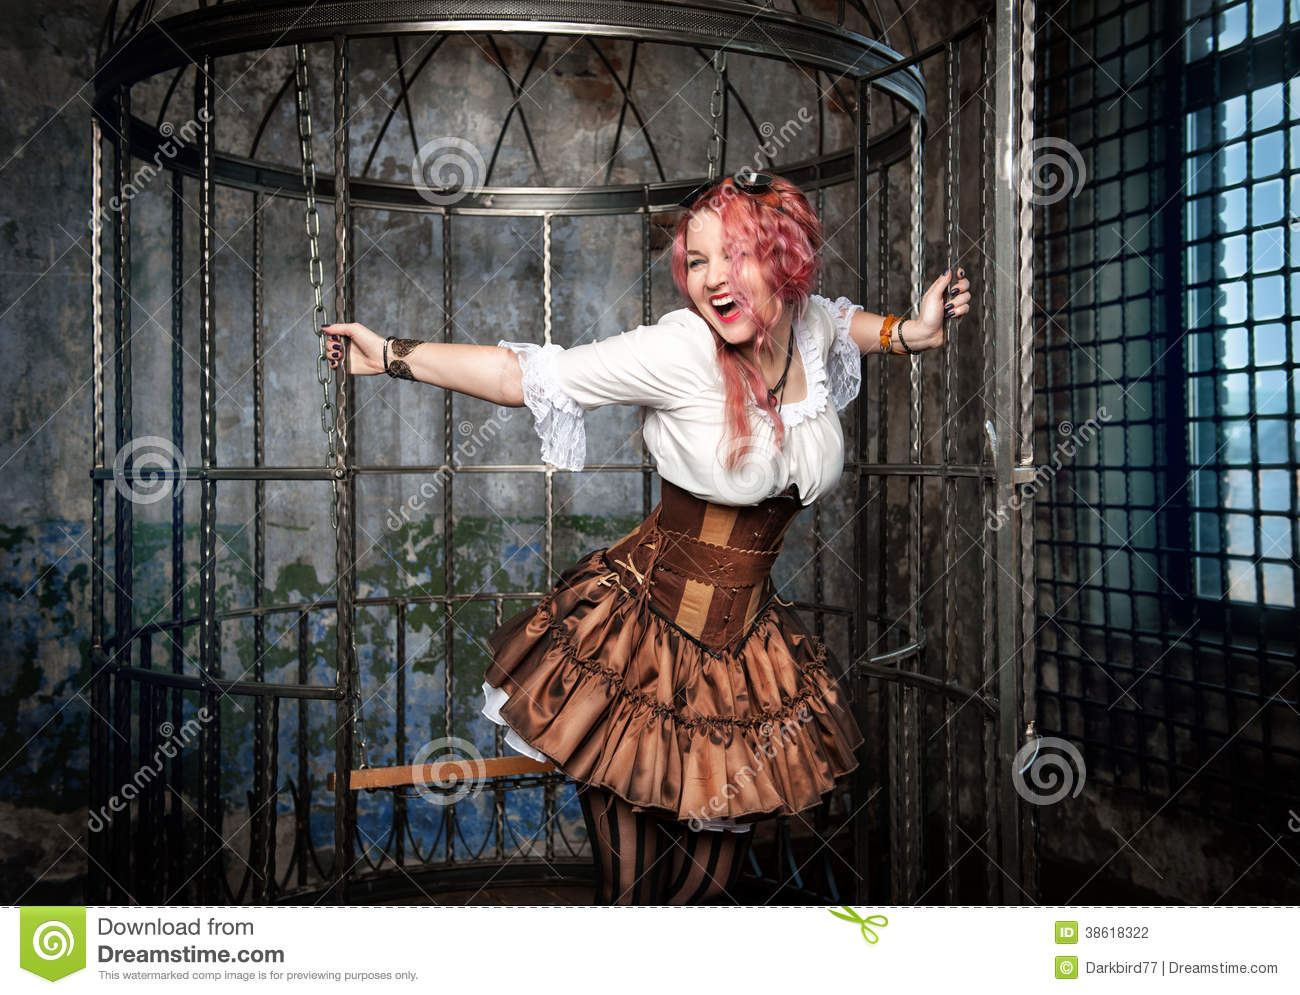 Screaming Beautiful Steampunk Woman In The Cage Stock ...